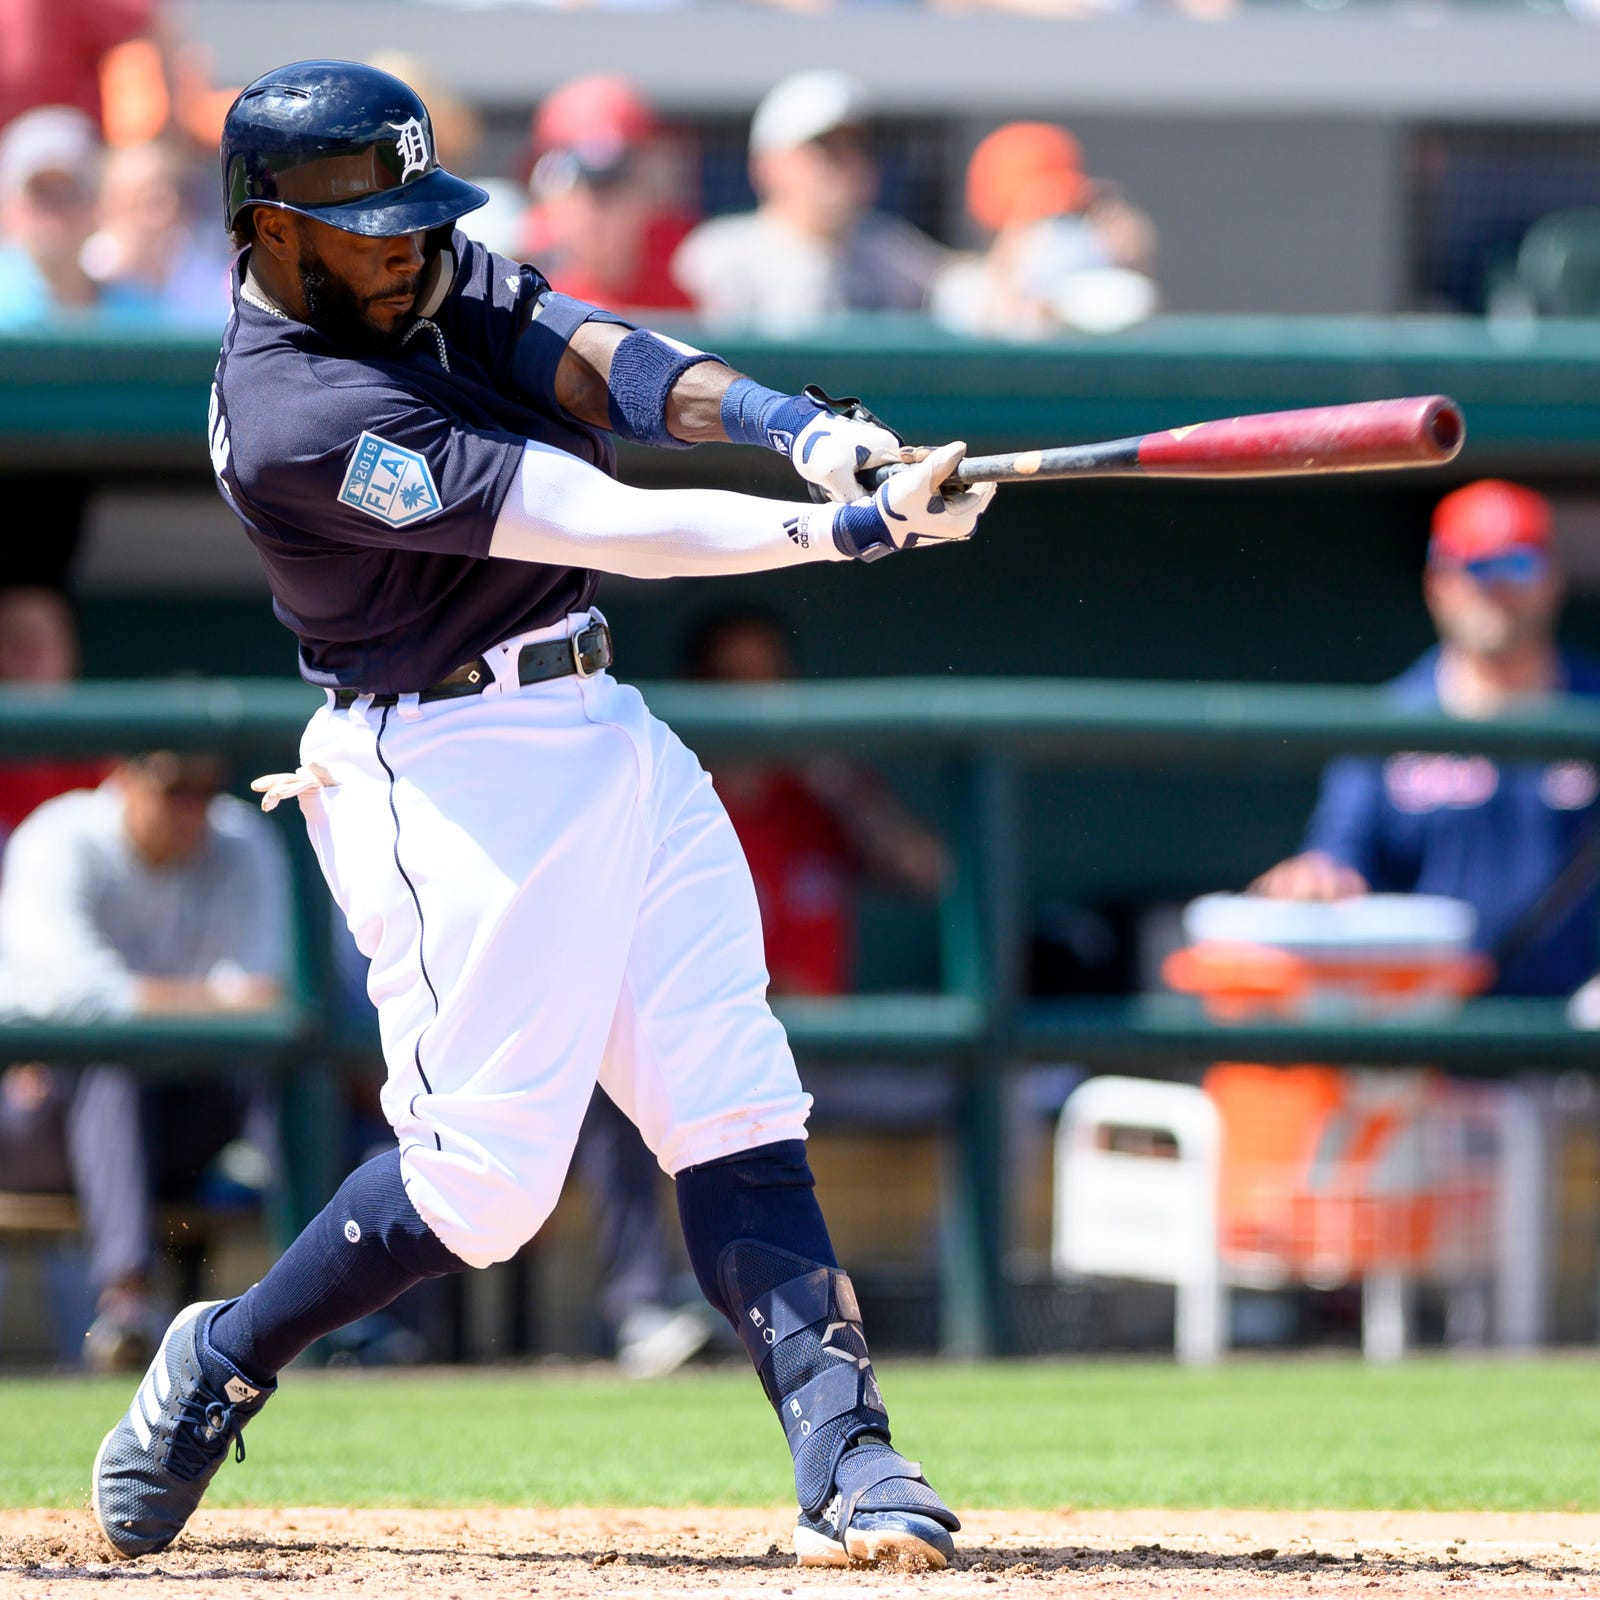 Detroit Tigers lineup vs. Phillies in spring: Spencer Turnbull vs. Bryce Harper